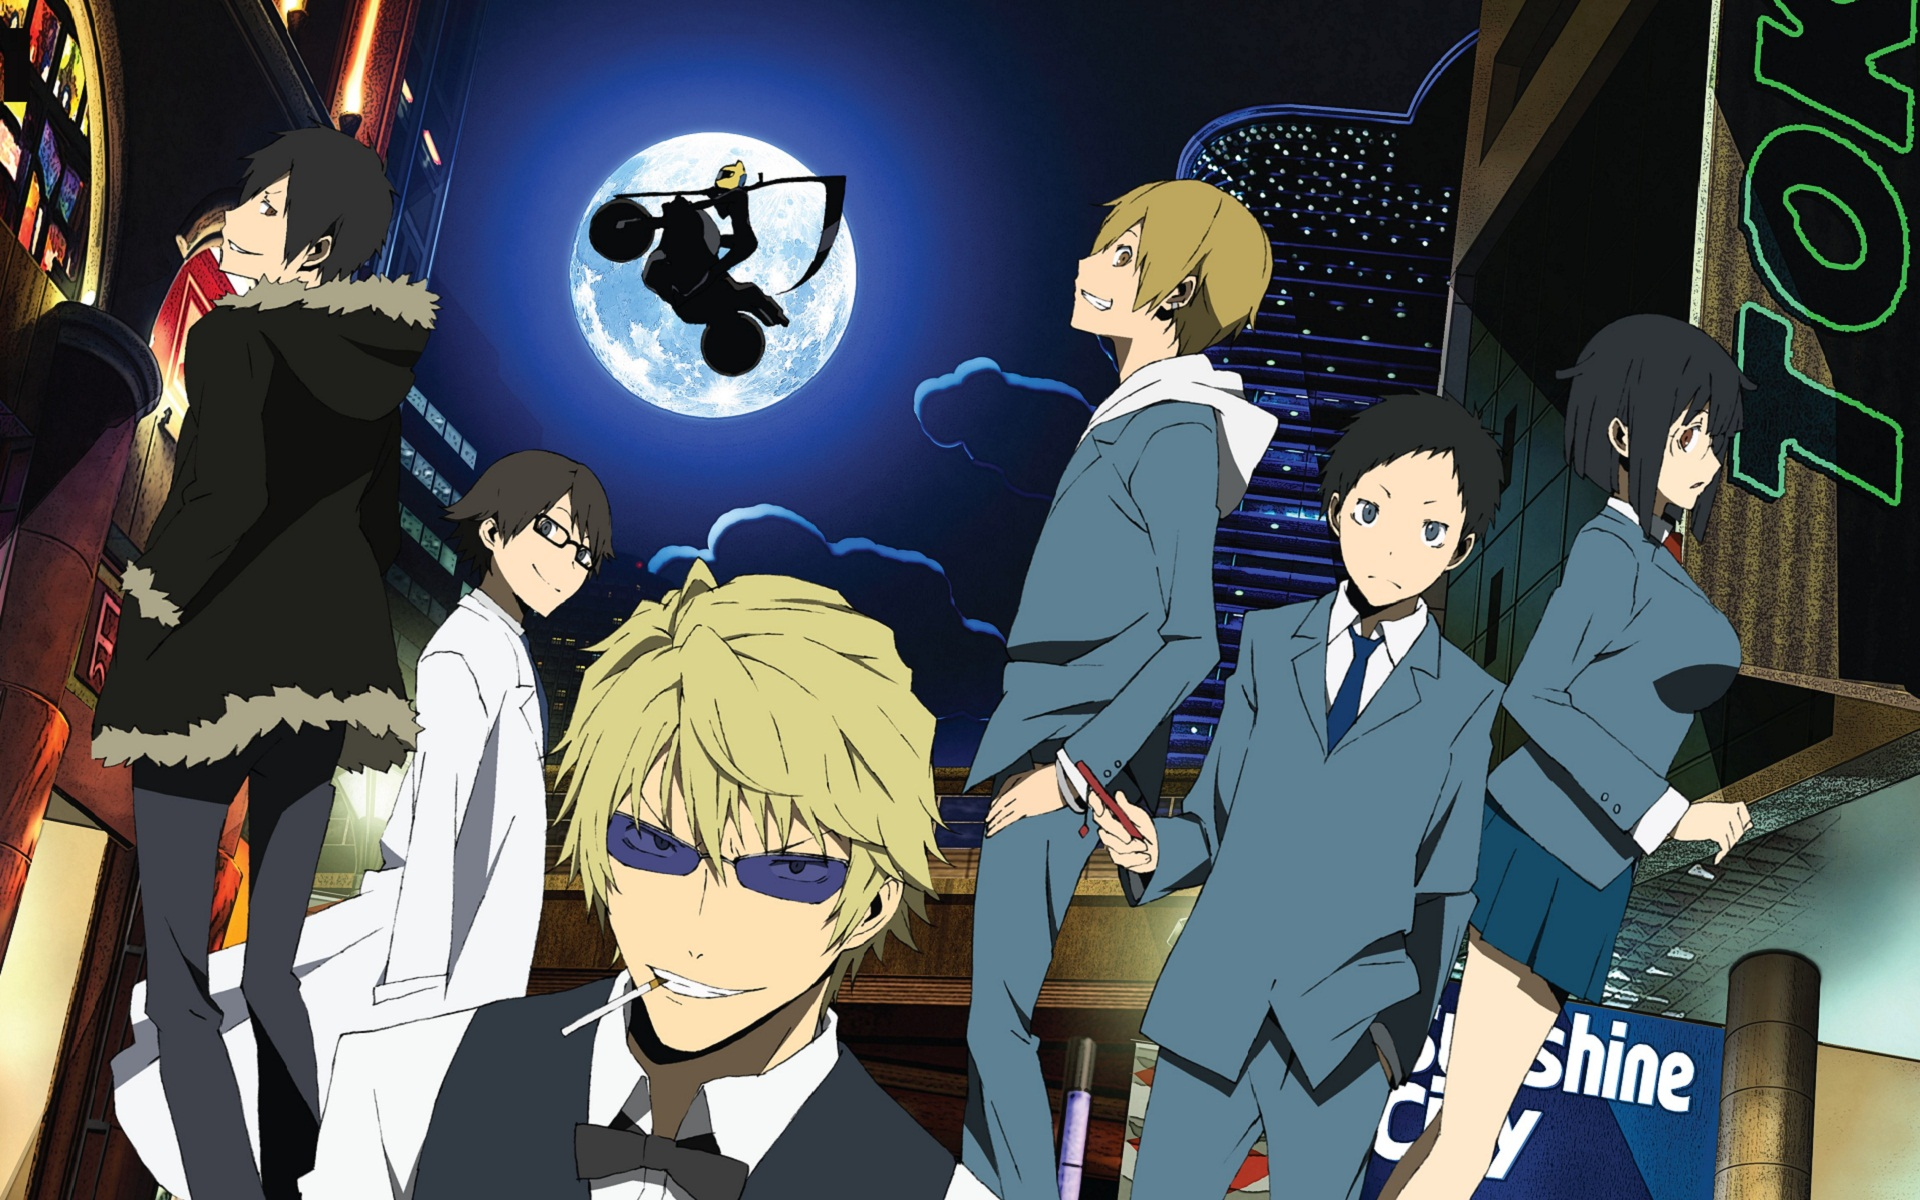 Risultati immagini per durarara anime first season wallpaper